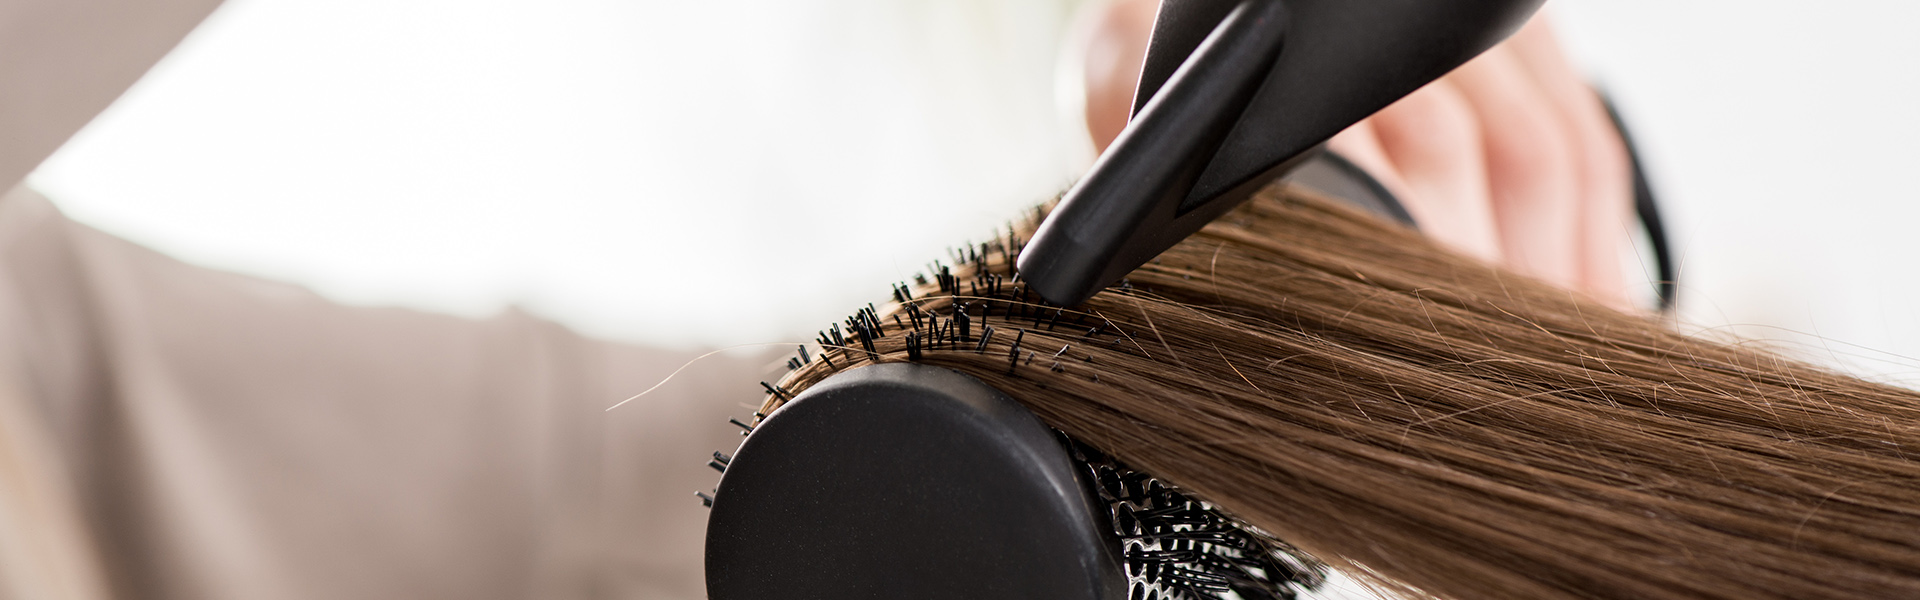 Close-up of a drying brown hair with hair dryer and round brush.